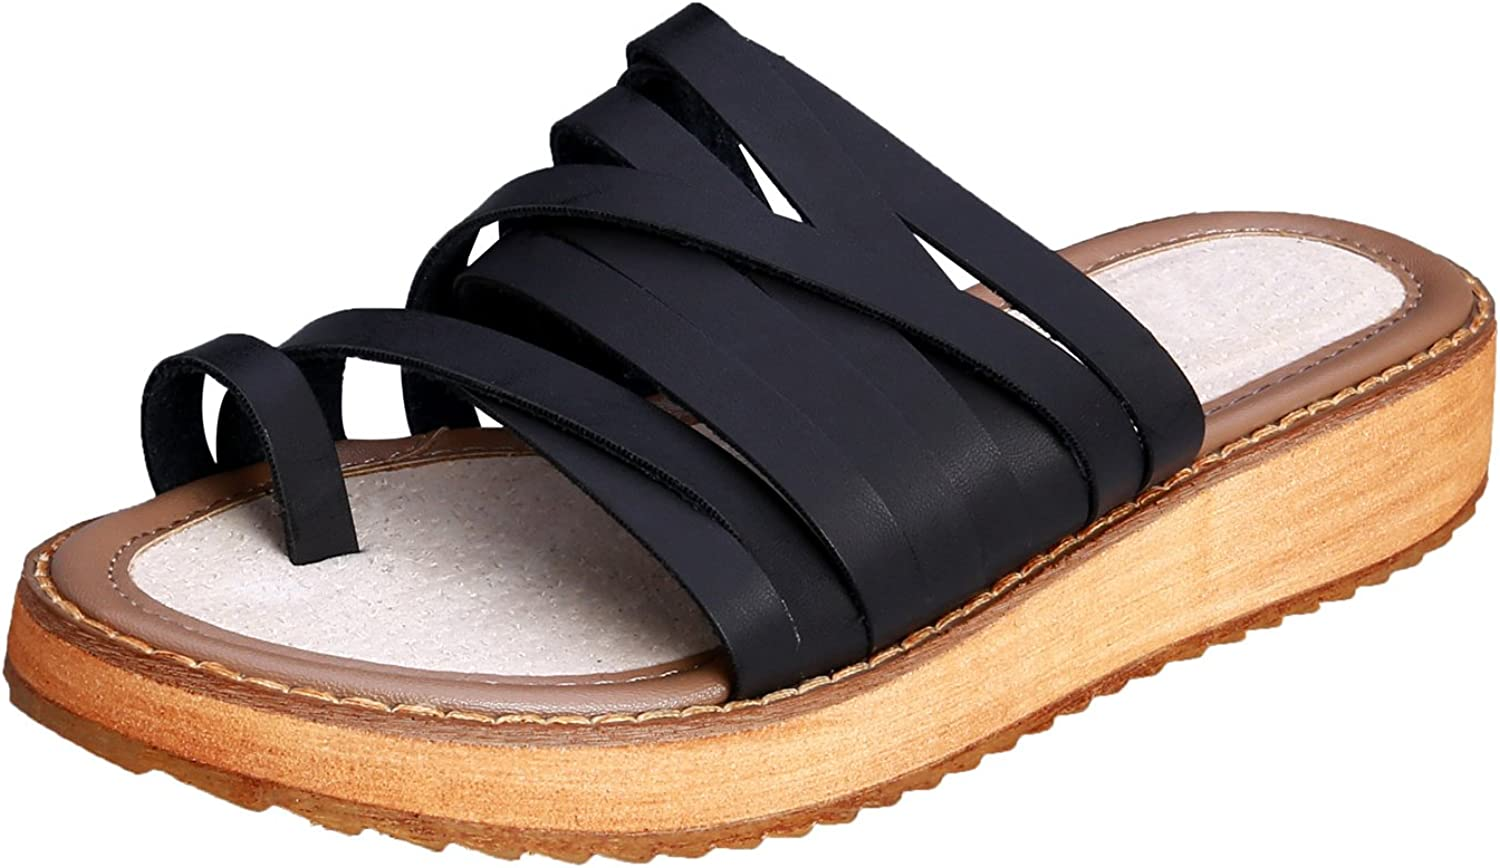 Smilun Lady's Sandal Flip Flop Thong Open Toe Double Toe Strap Strappy Gladiator Wedge Sandals